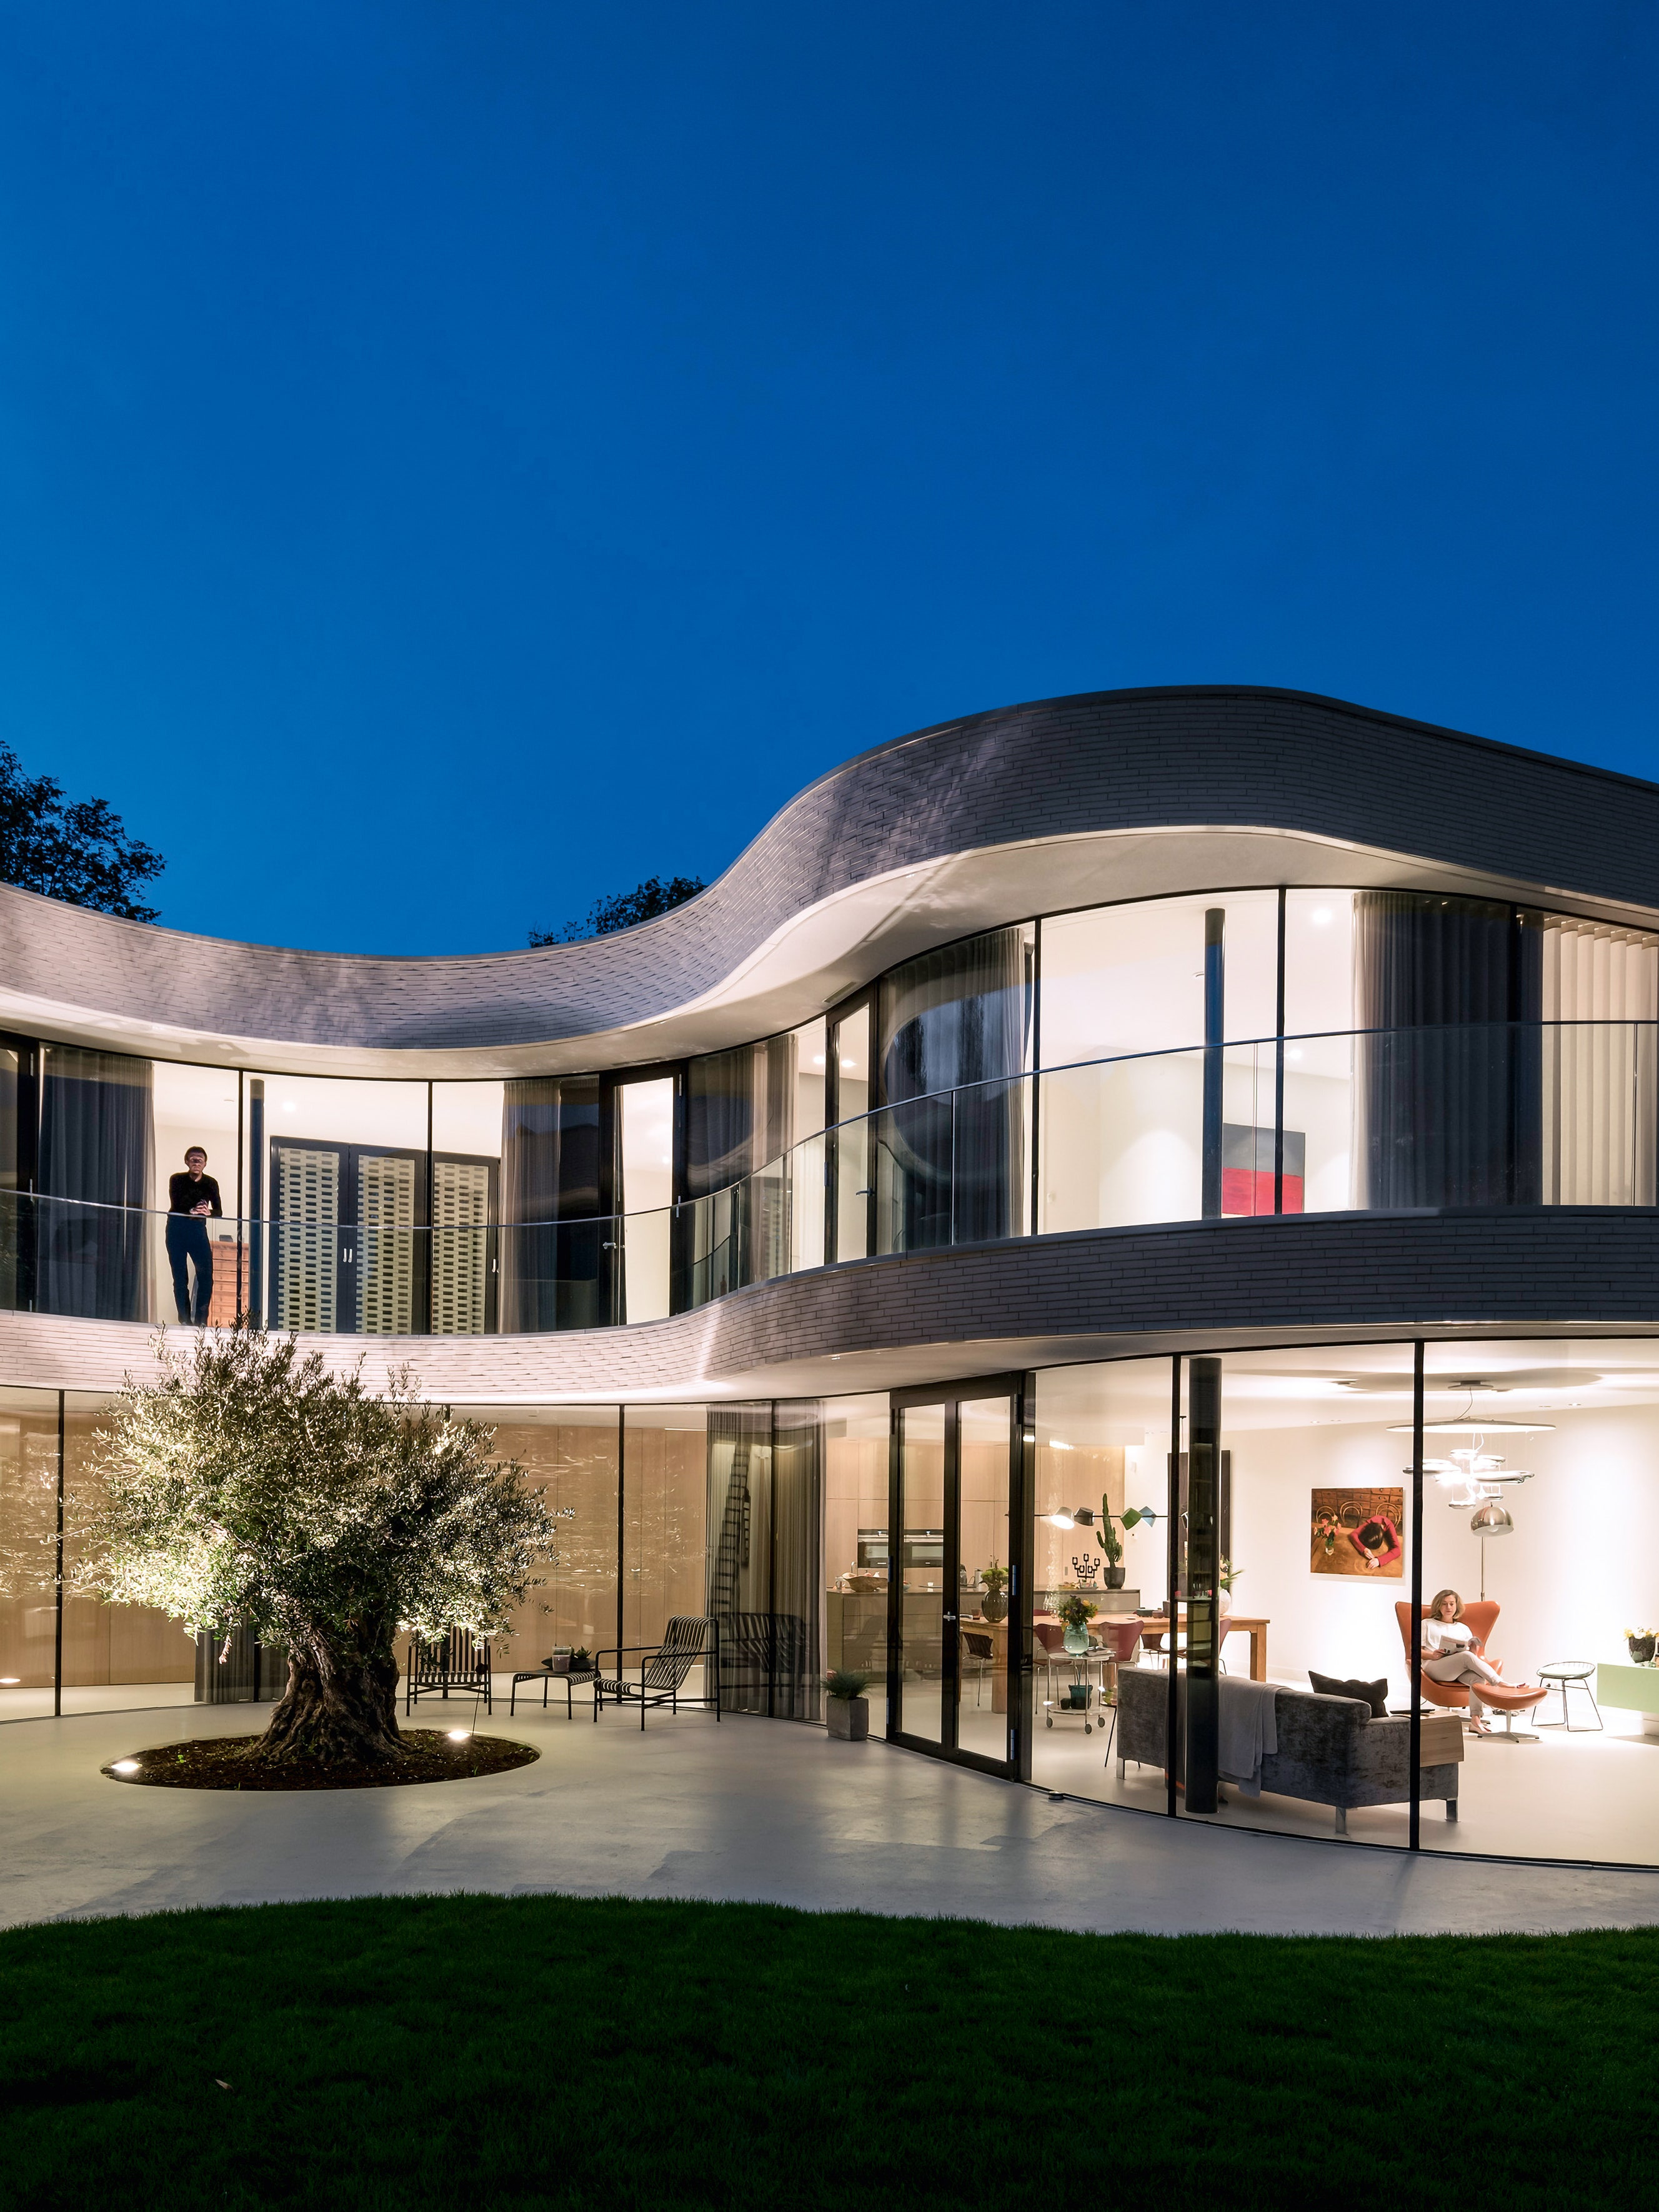 Top Beautiful Houses In the World Elegant Jaw Dropping Contemporary Homes From Across the Globe